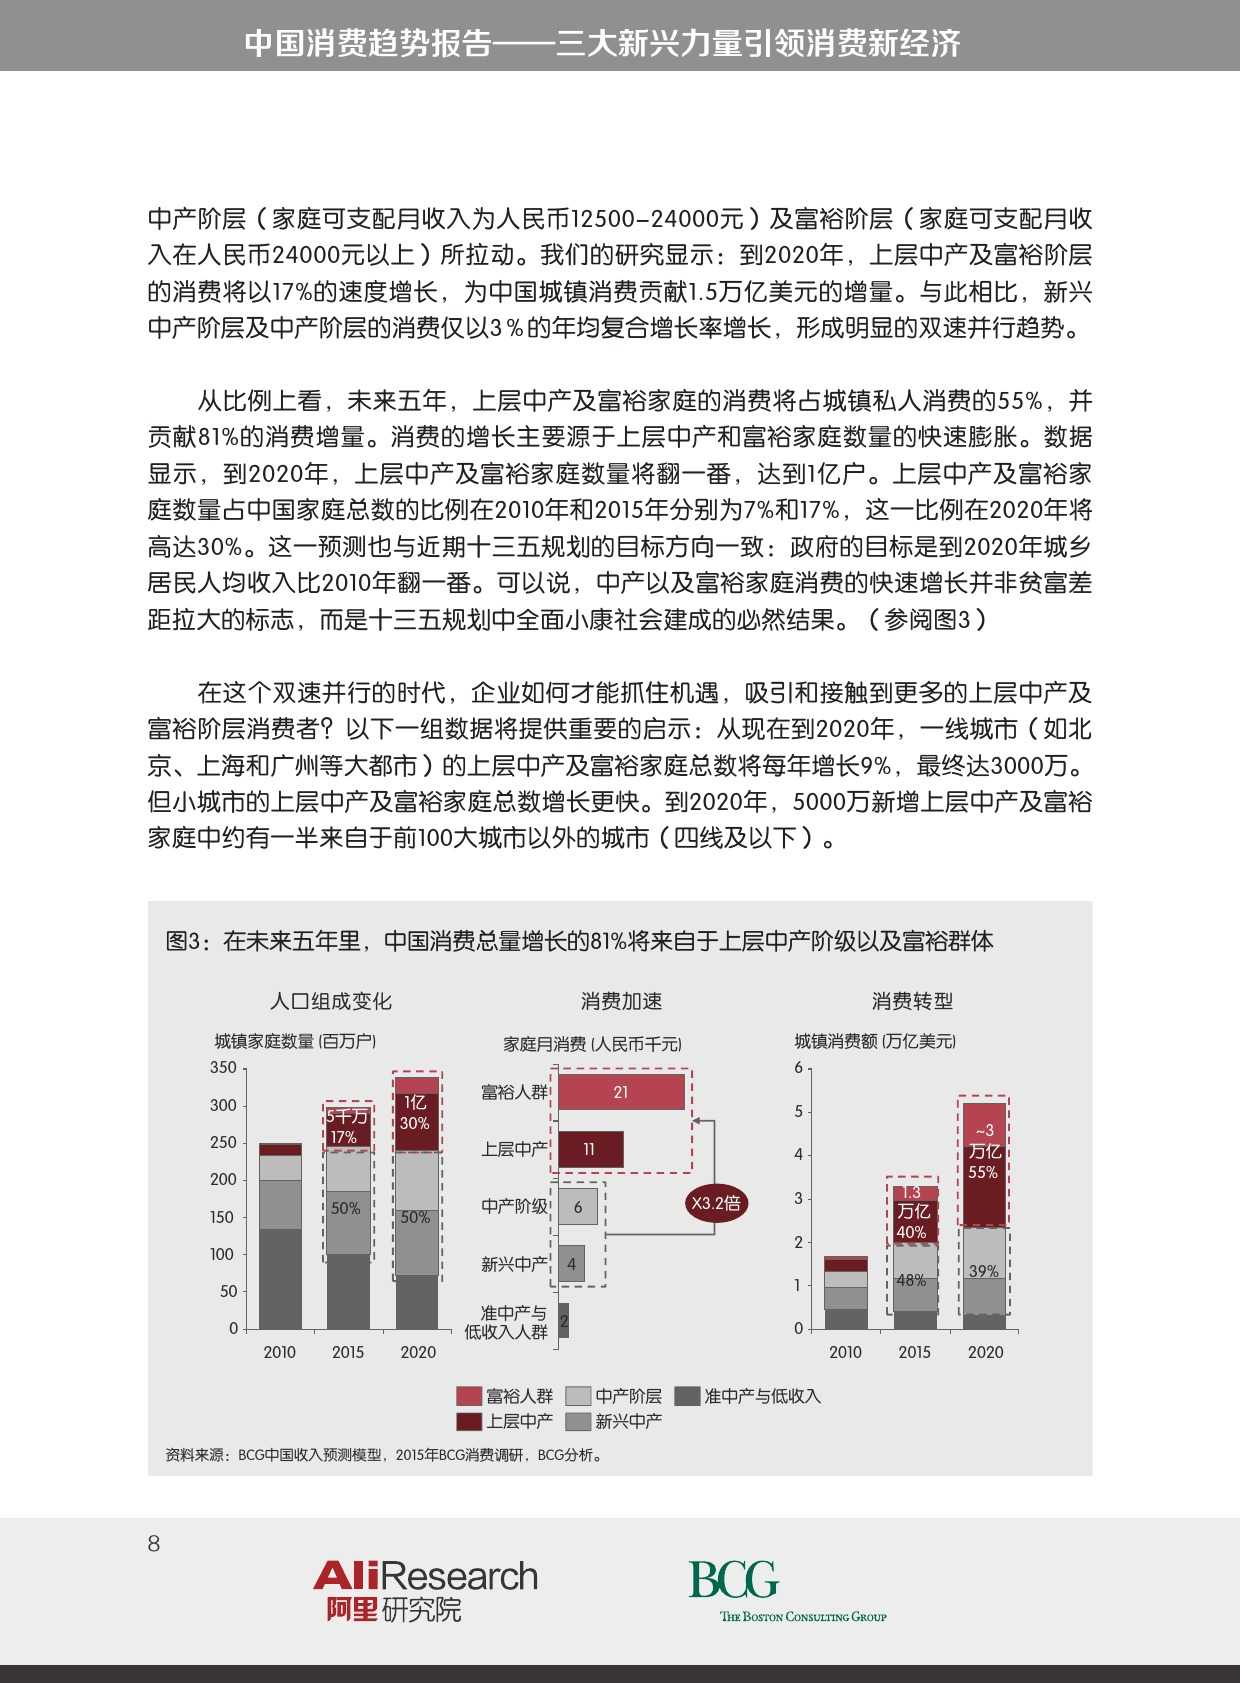 BCG_The_New_China_Playbook_Dec_2015_CHN_000008